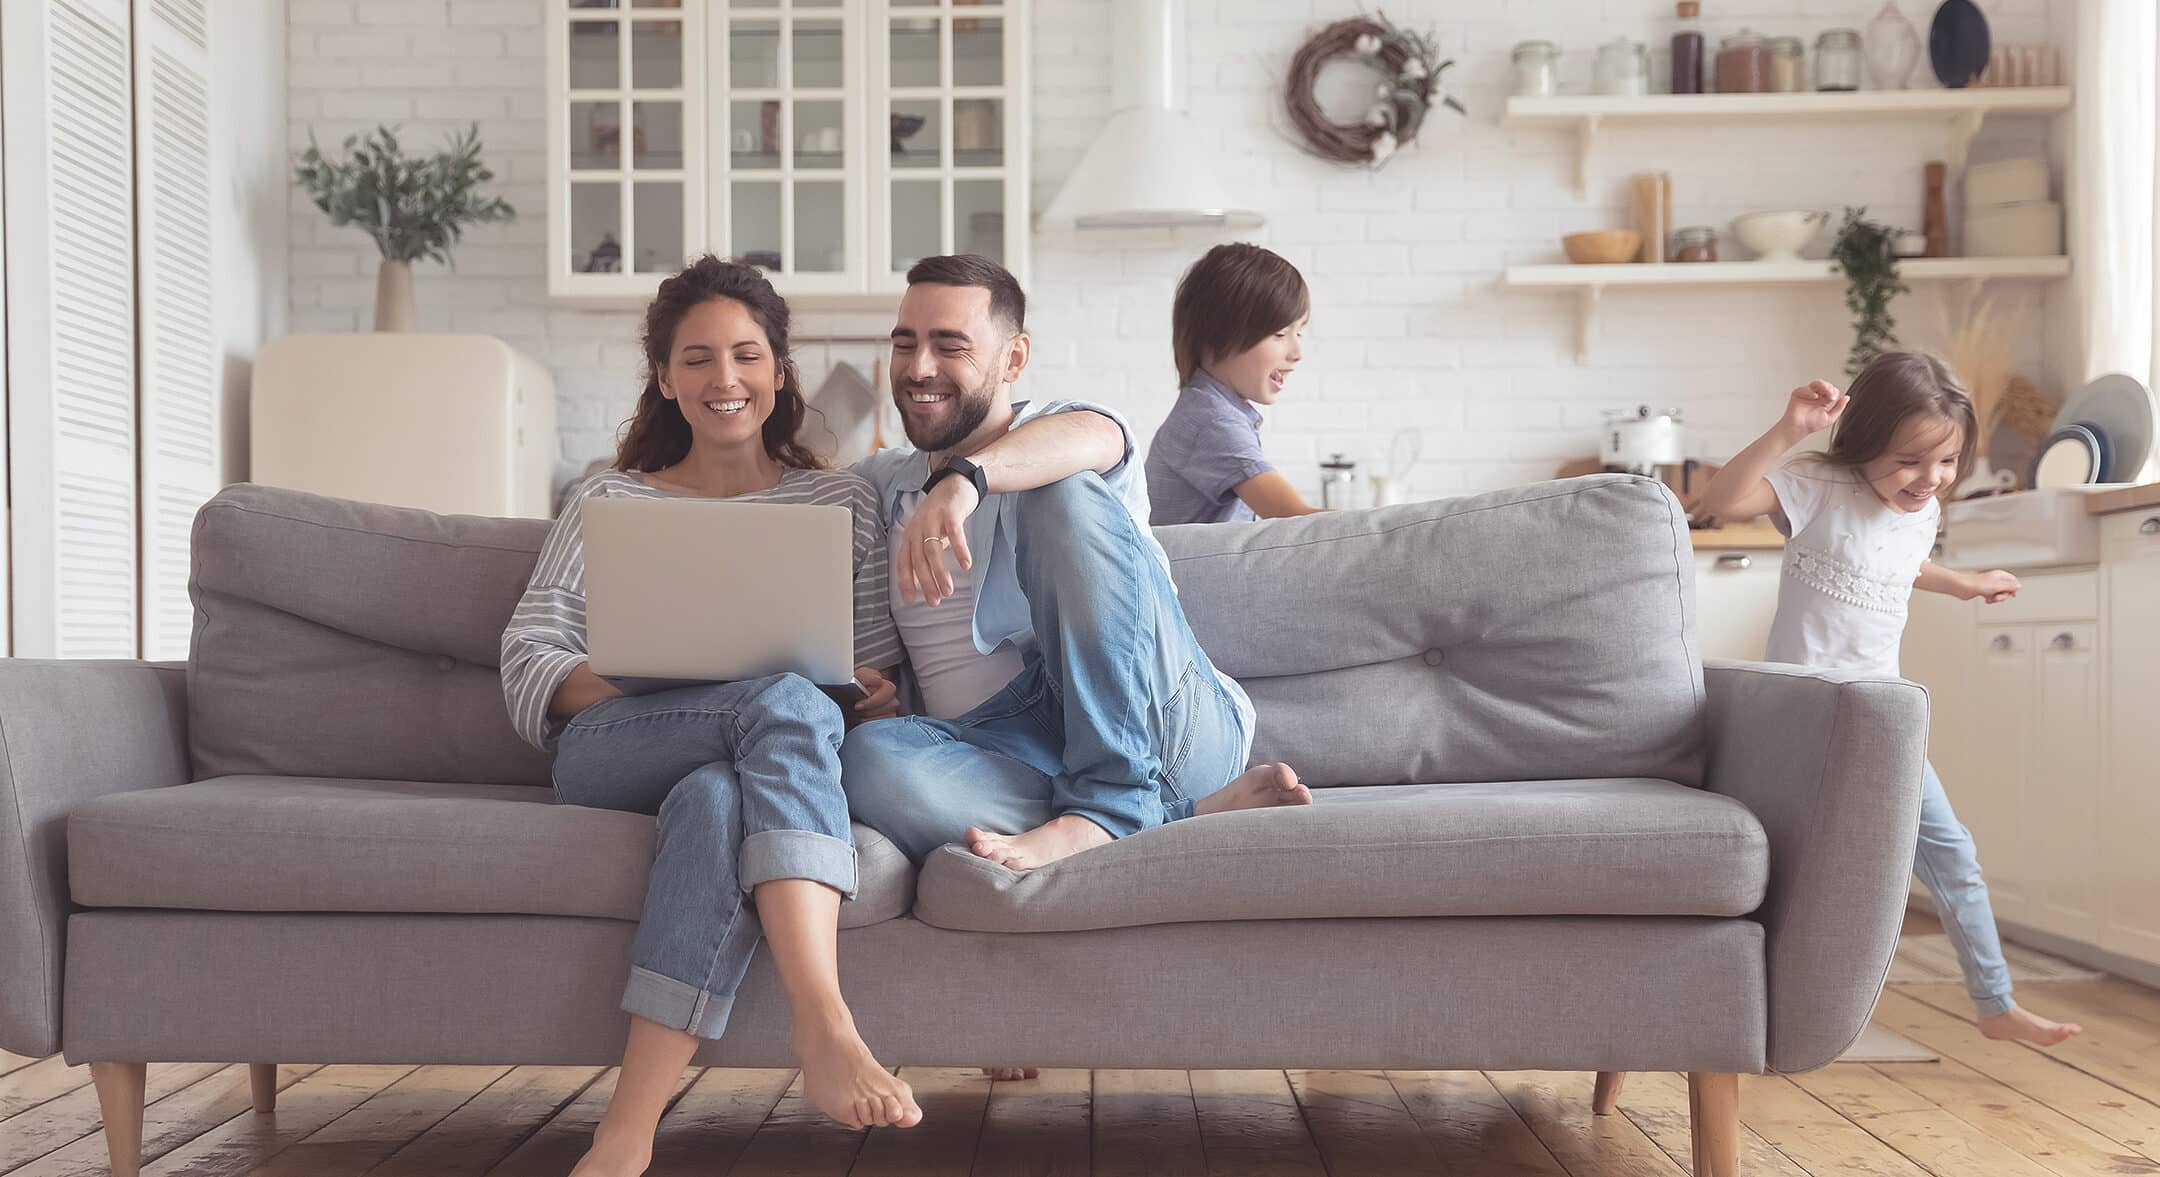 A family sitting in the living room, browsing a laptop about to apply for a mortgage.